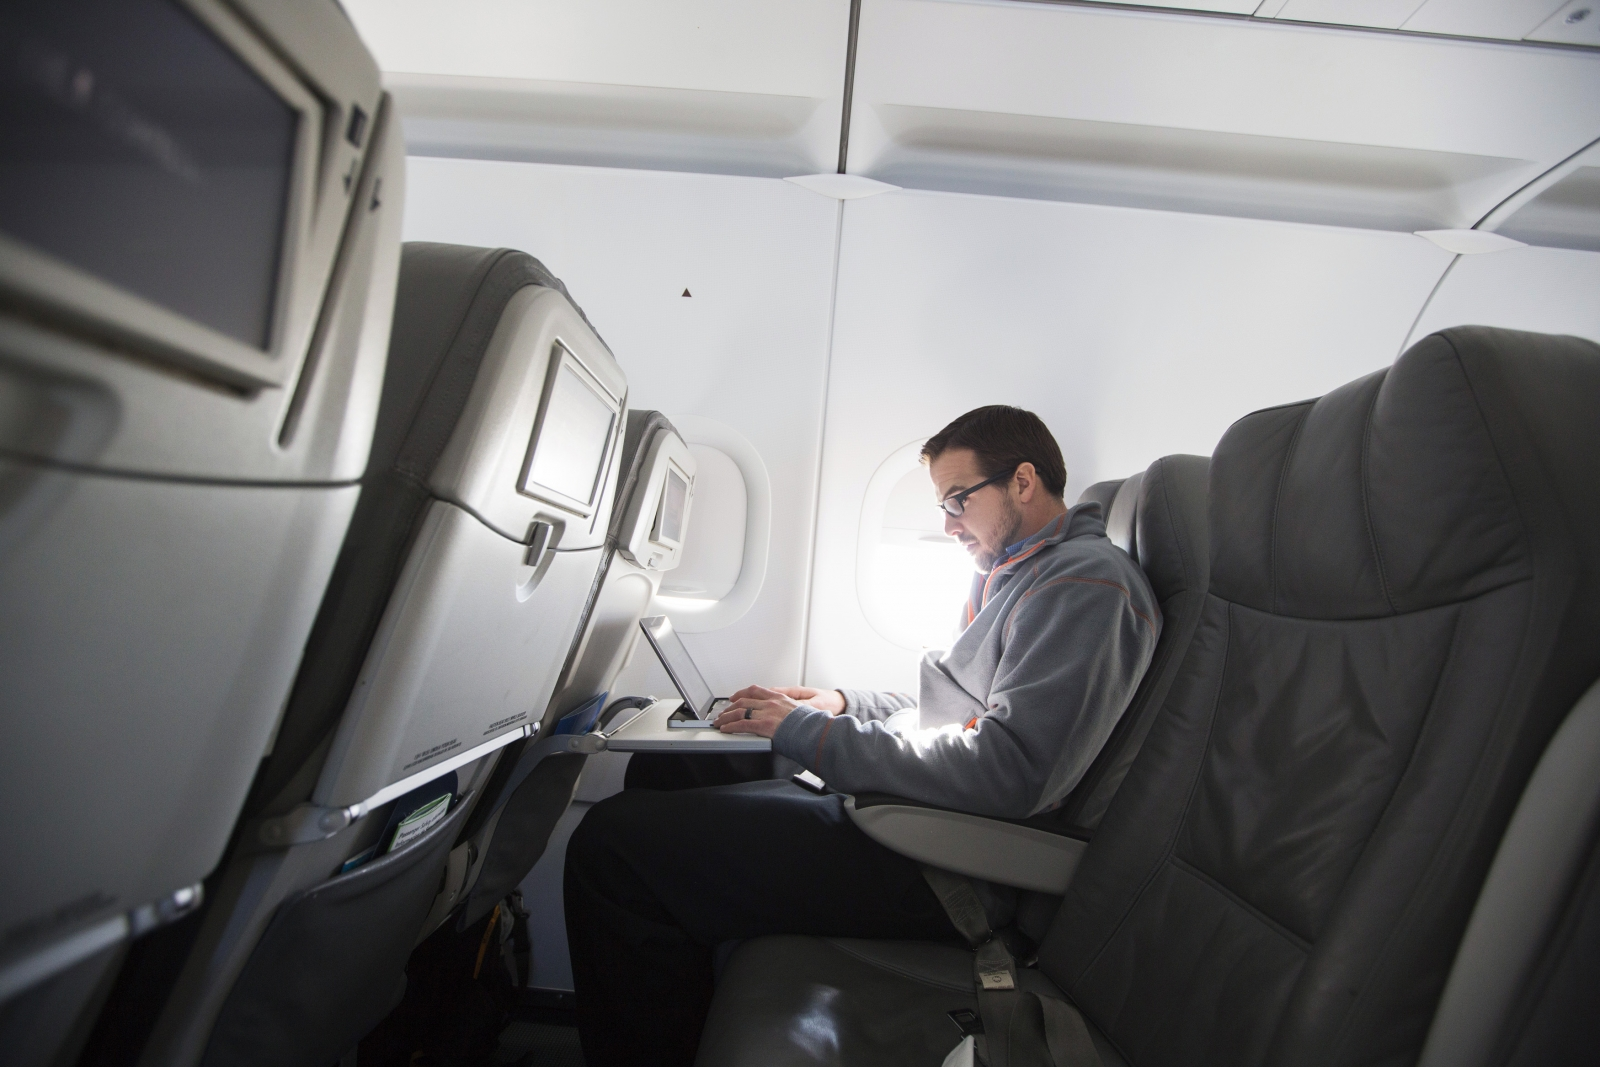 Plane Wi-Fi Vulnerable to be Hacked